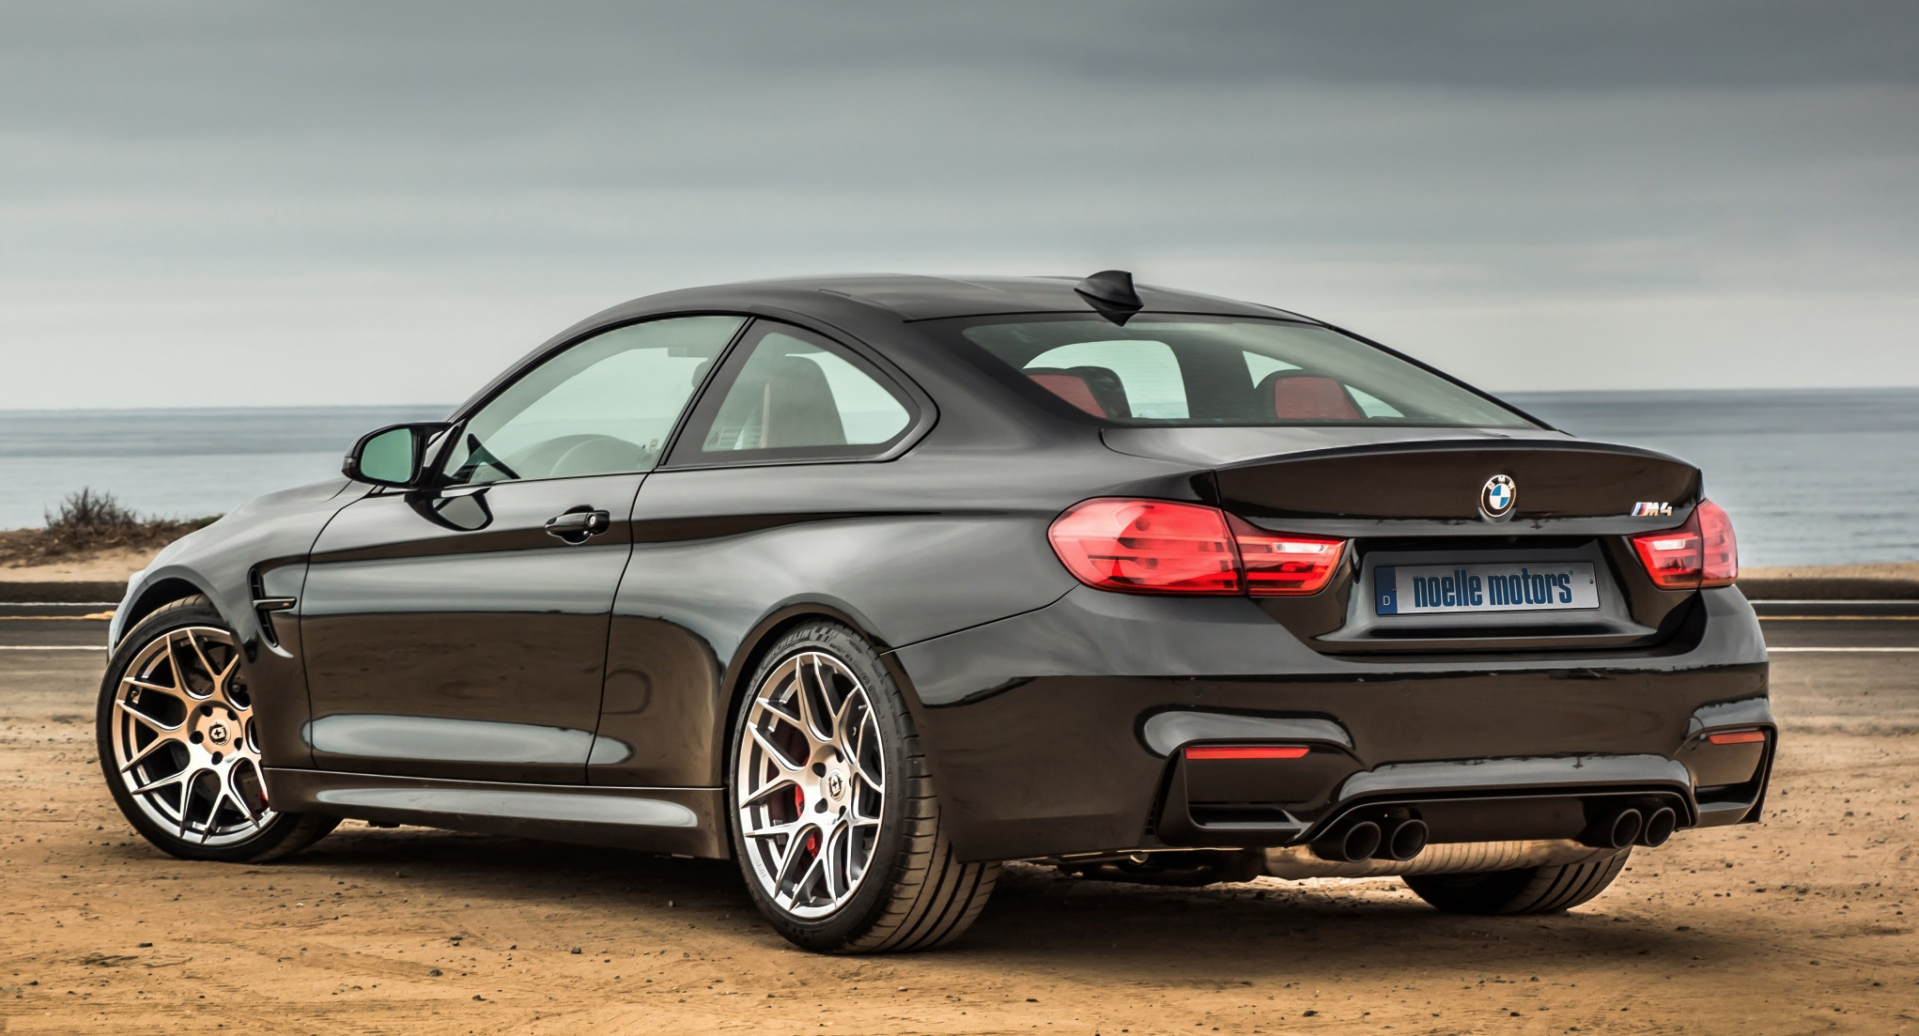 Noelle Motors Bmw M4 Goes Up To 325 Km H Thanks To 560 Hp Autoevolution